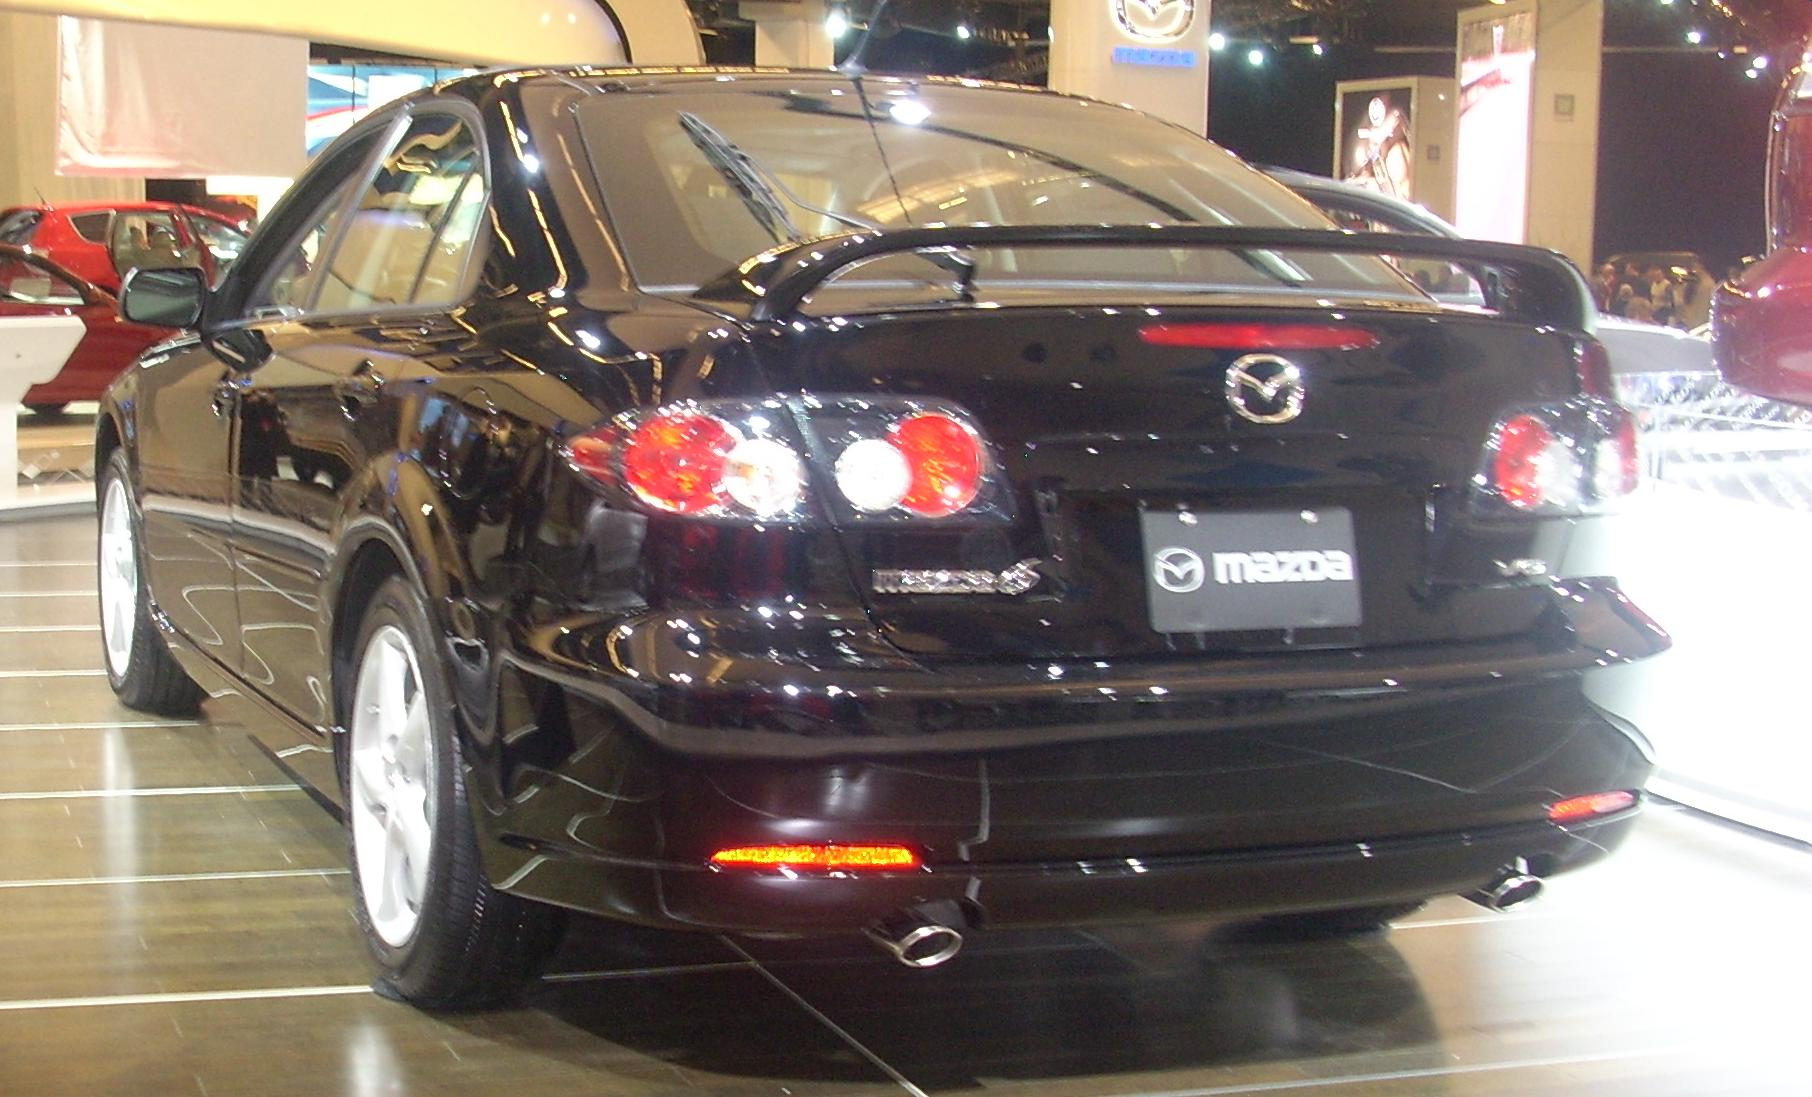 https://upload.wikimedia.org/wikipedia/commons/c/c2/%2708_Mazda6_Hatchback_V6_%28Montreal%29.jpg